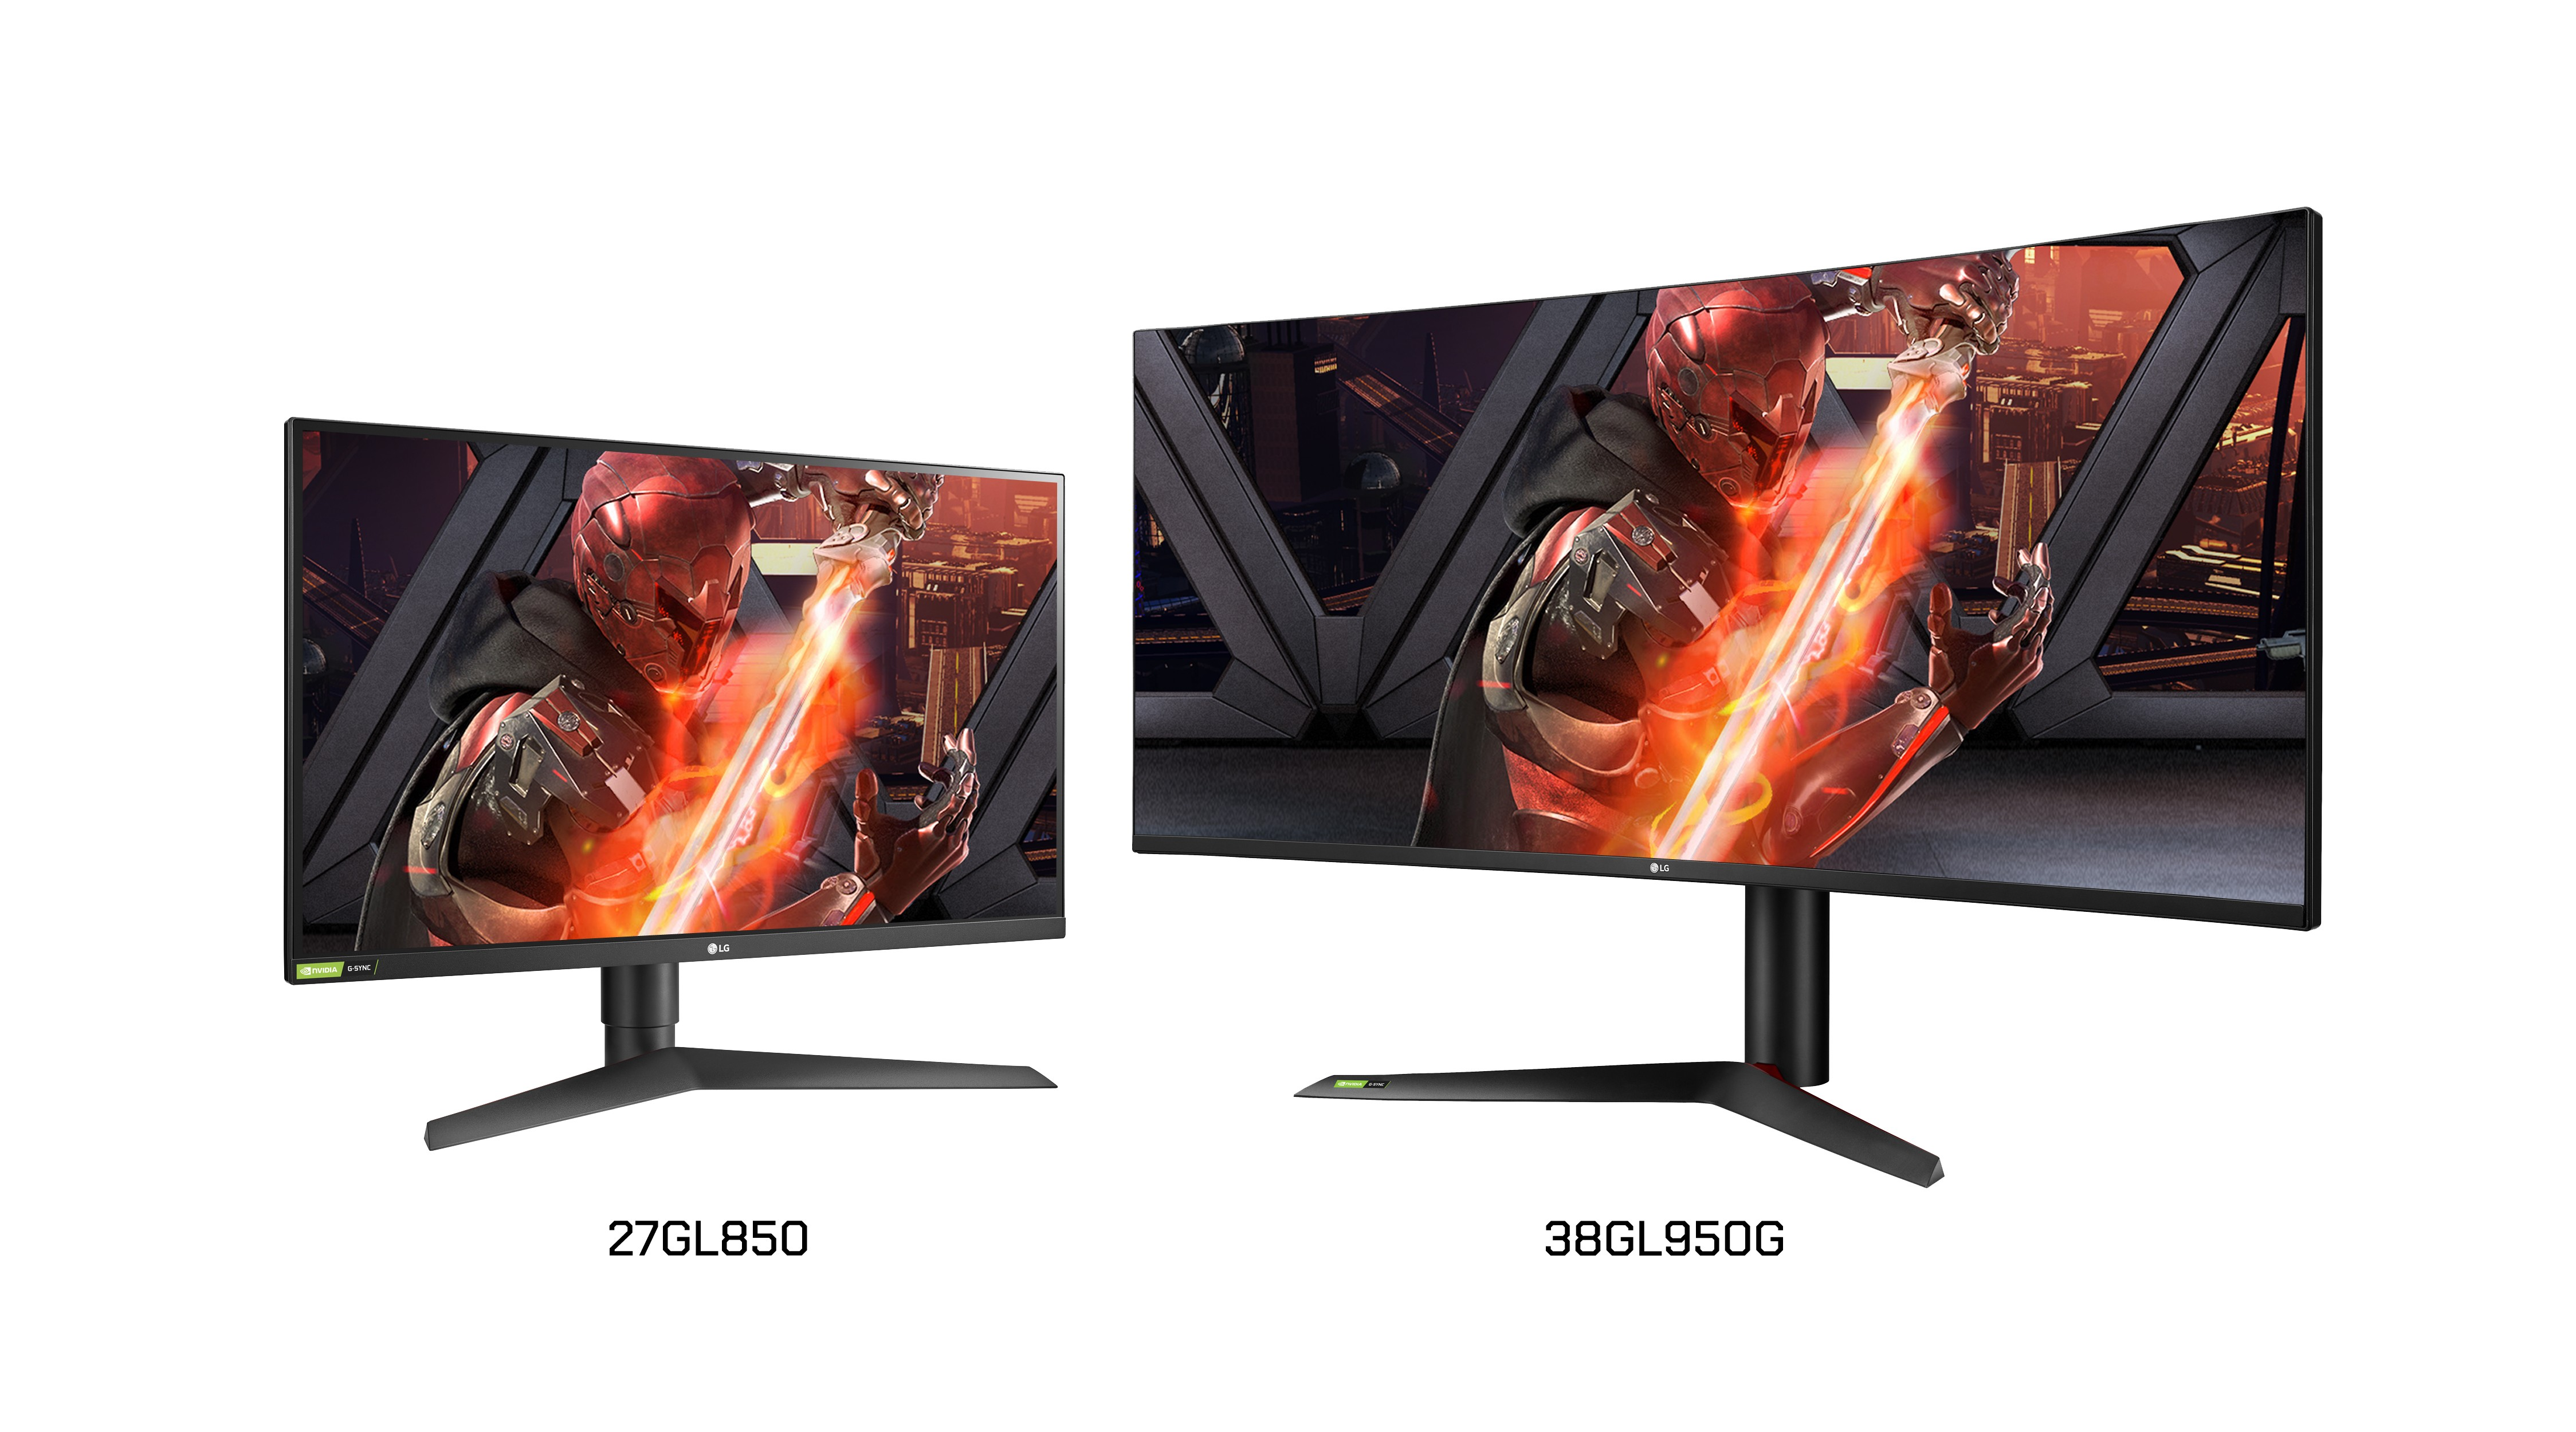 A left-side view of LG UltraGear Nano IPS G-SYNC Gaming Monitor model 27GL850 next to a right-side view of model 38GL950G